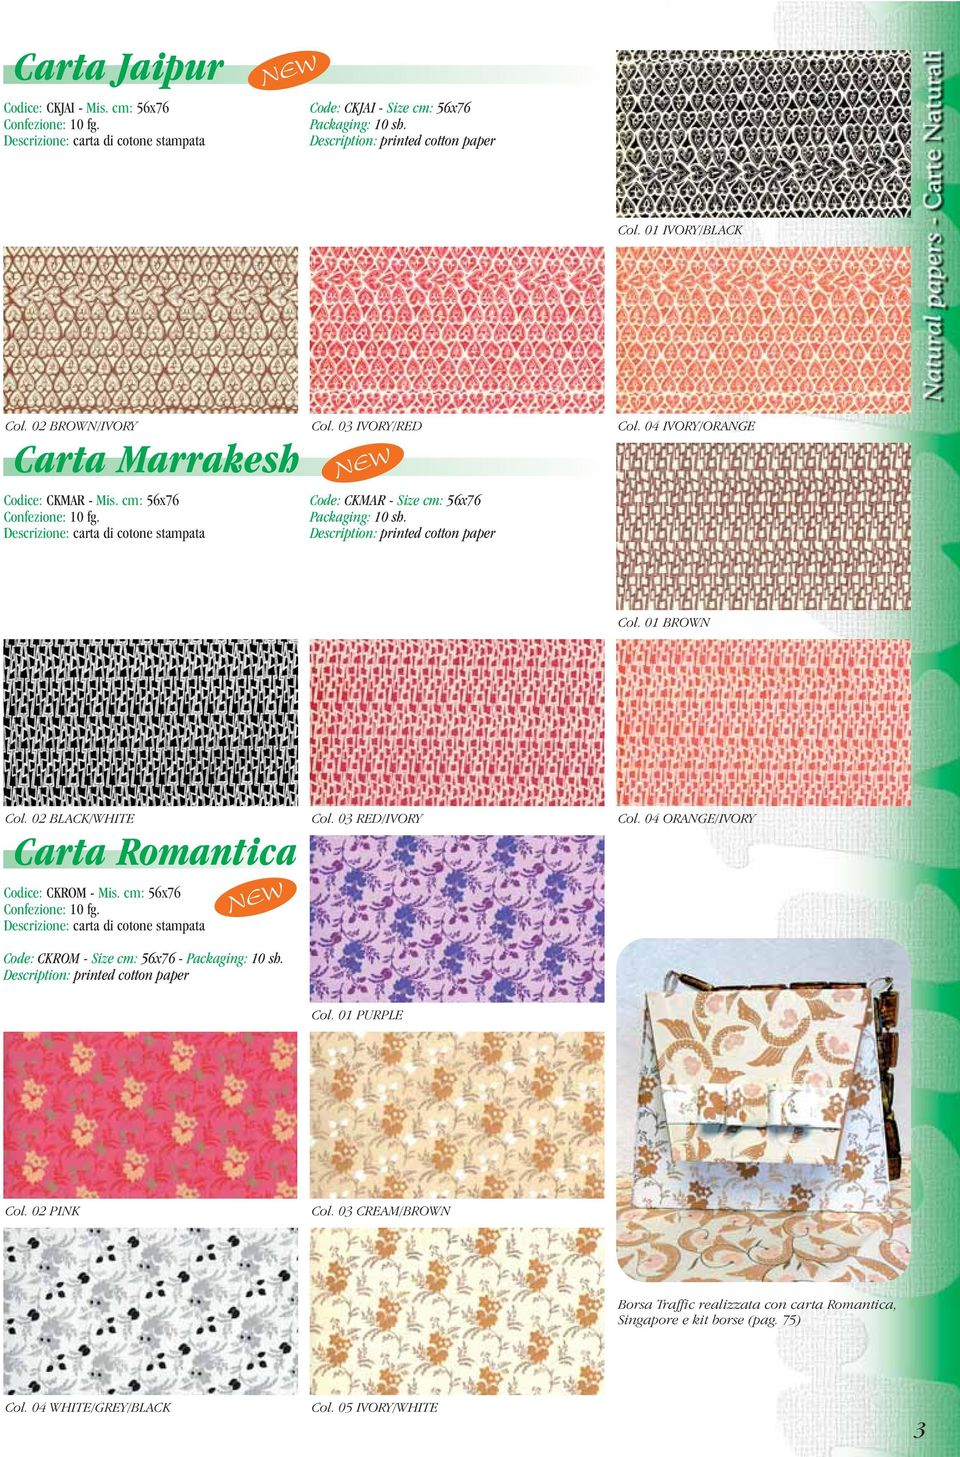 Descrizione: carta di cotone stampata Code: CKMAR - Size cm: 56x76 Packaging: 10 sh. Description: printed cotton paper Col. 01 BROWN Col. 02 BLACK/WHITE Col. 03 RED/IVORY Col.